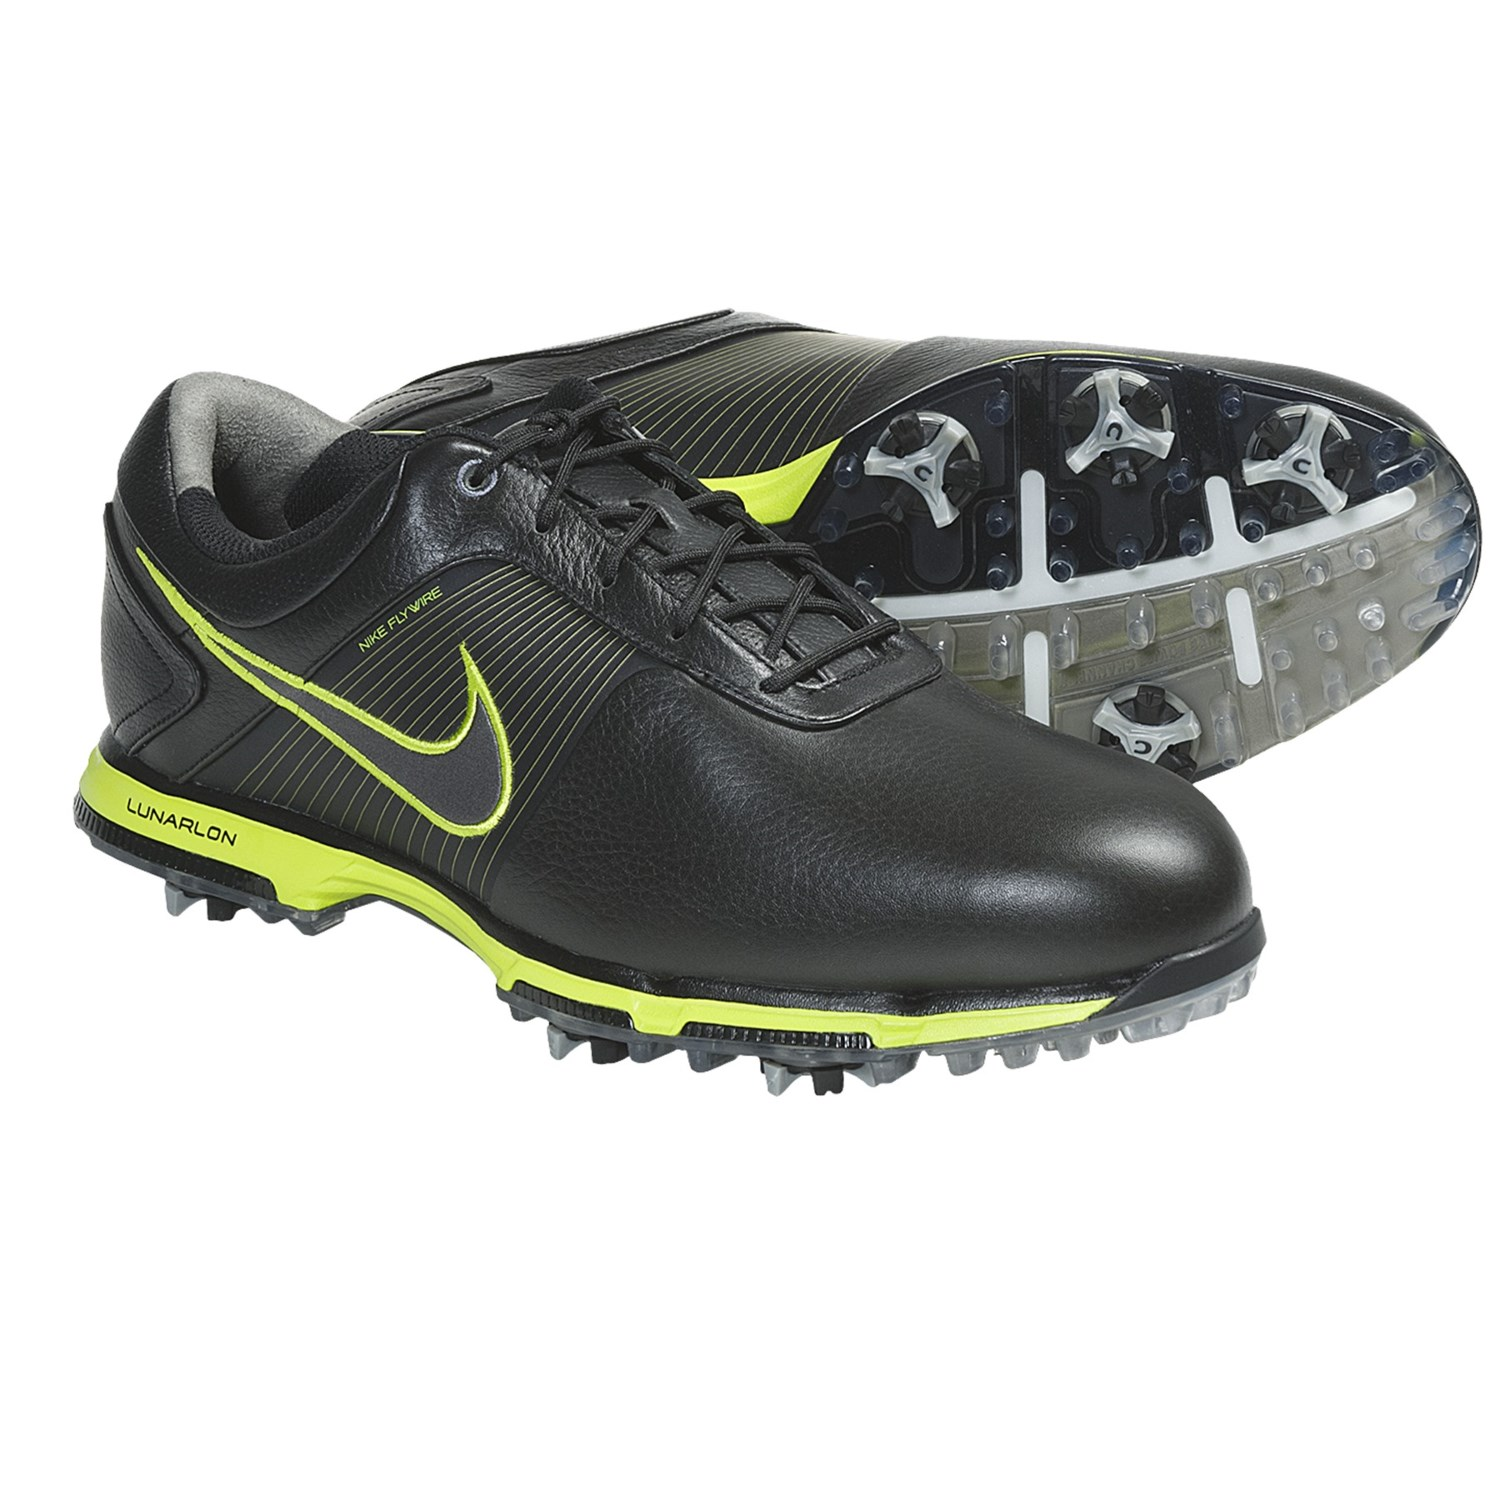 Nike Golf Lunar Control Golf Shoes (For Men) in Black/Metallic Dark